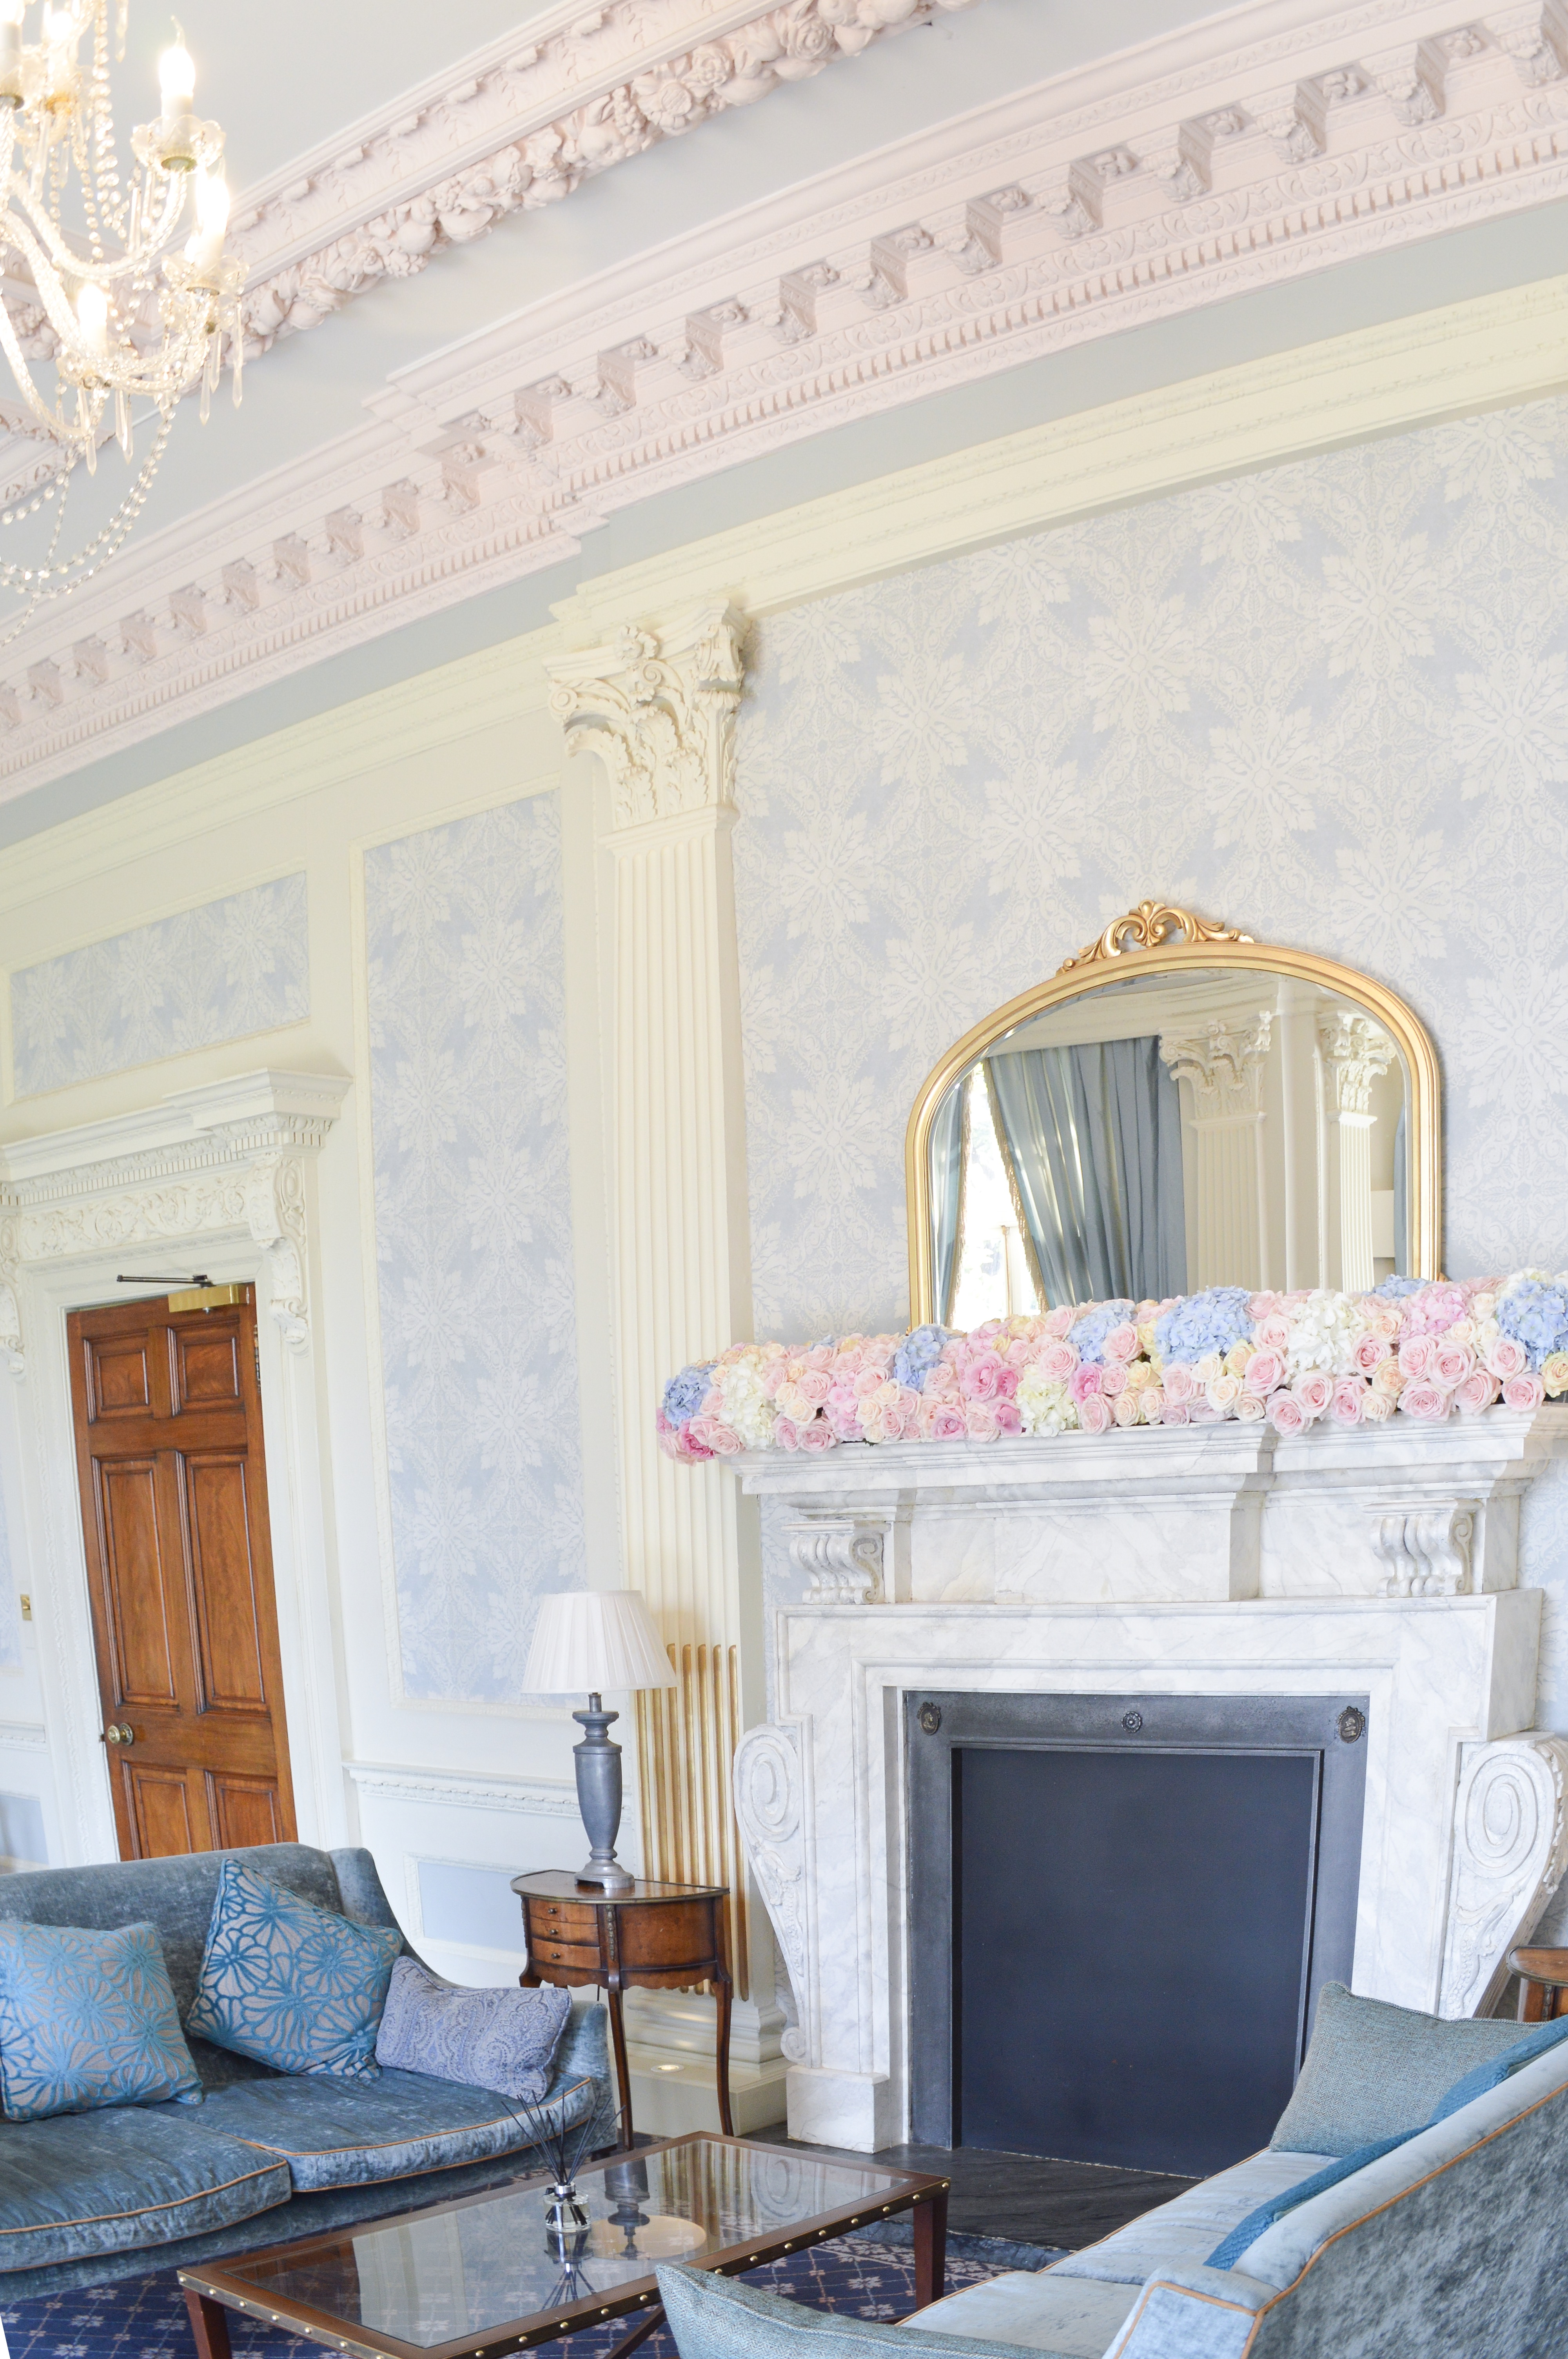 Dusty blue and pink wedding fireplace arrangements wedding ceremony aisle tall centrepieces Cherie Kelly cakes London Hedsor House 2